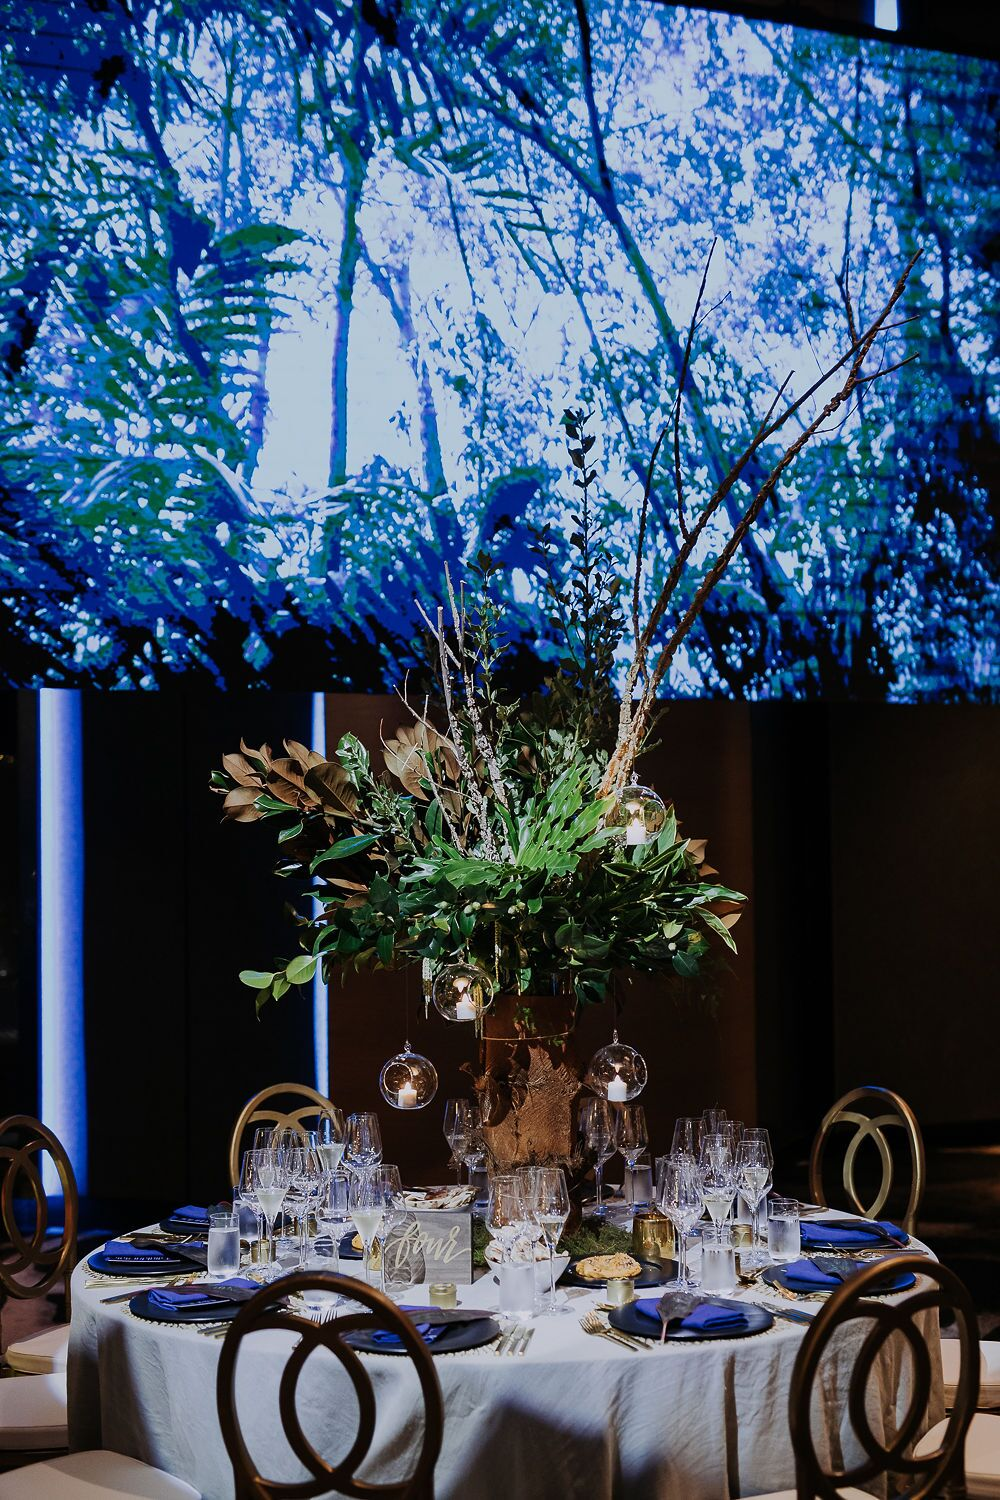 white+white weddings and events the wedding school nick and nate w hotel gold setting tablescape forest